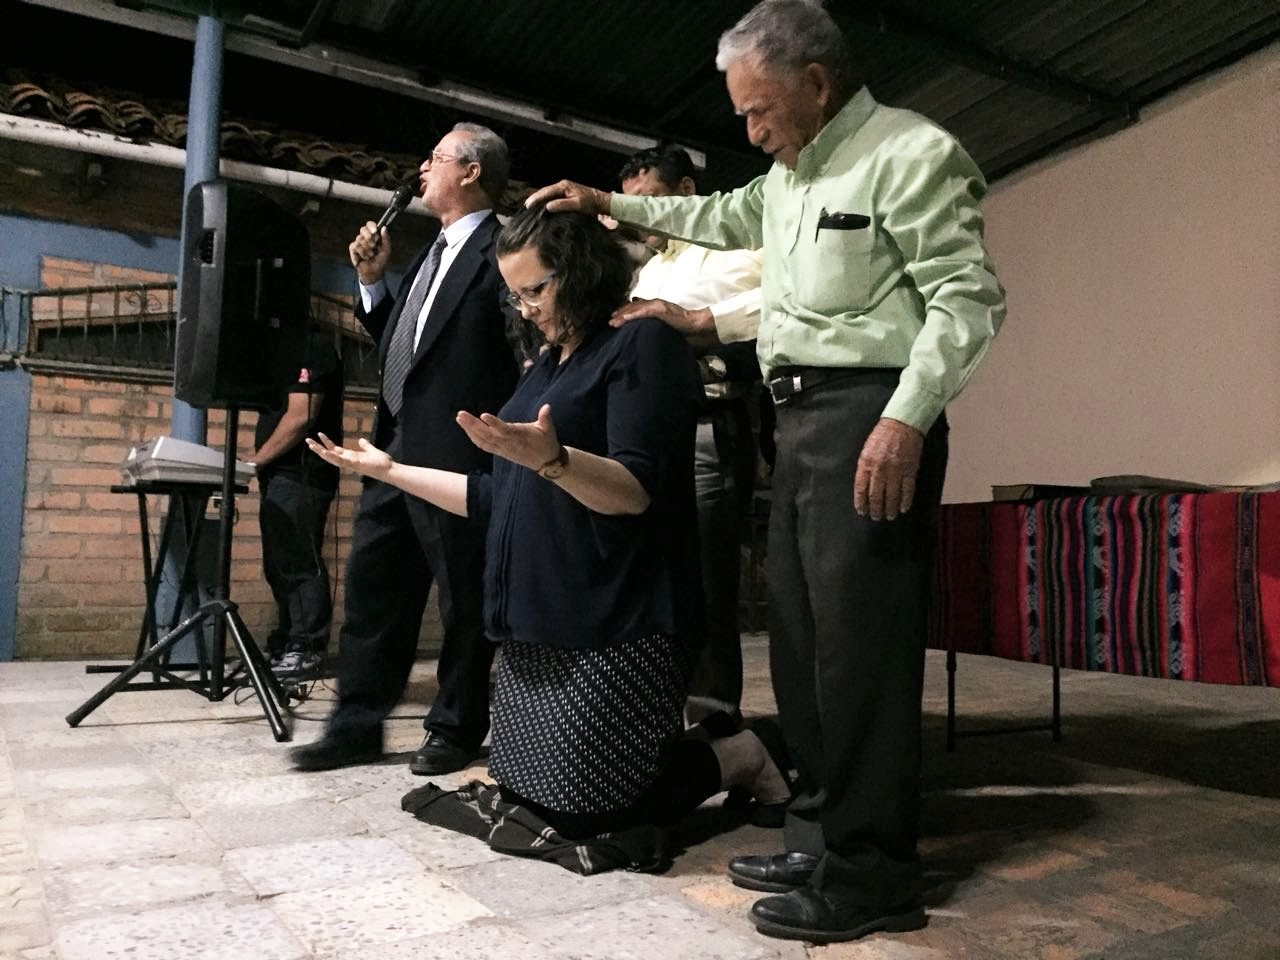 I was installed as mission co-worker at Villa Gracia on March 2.